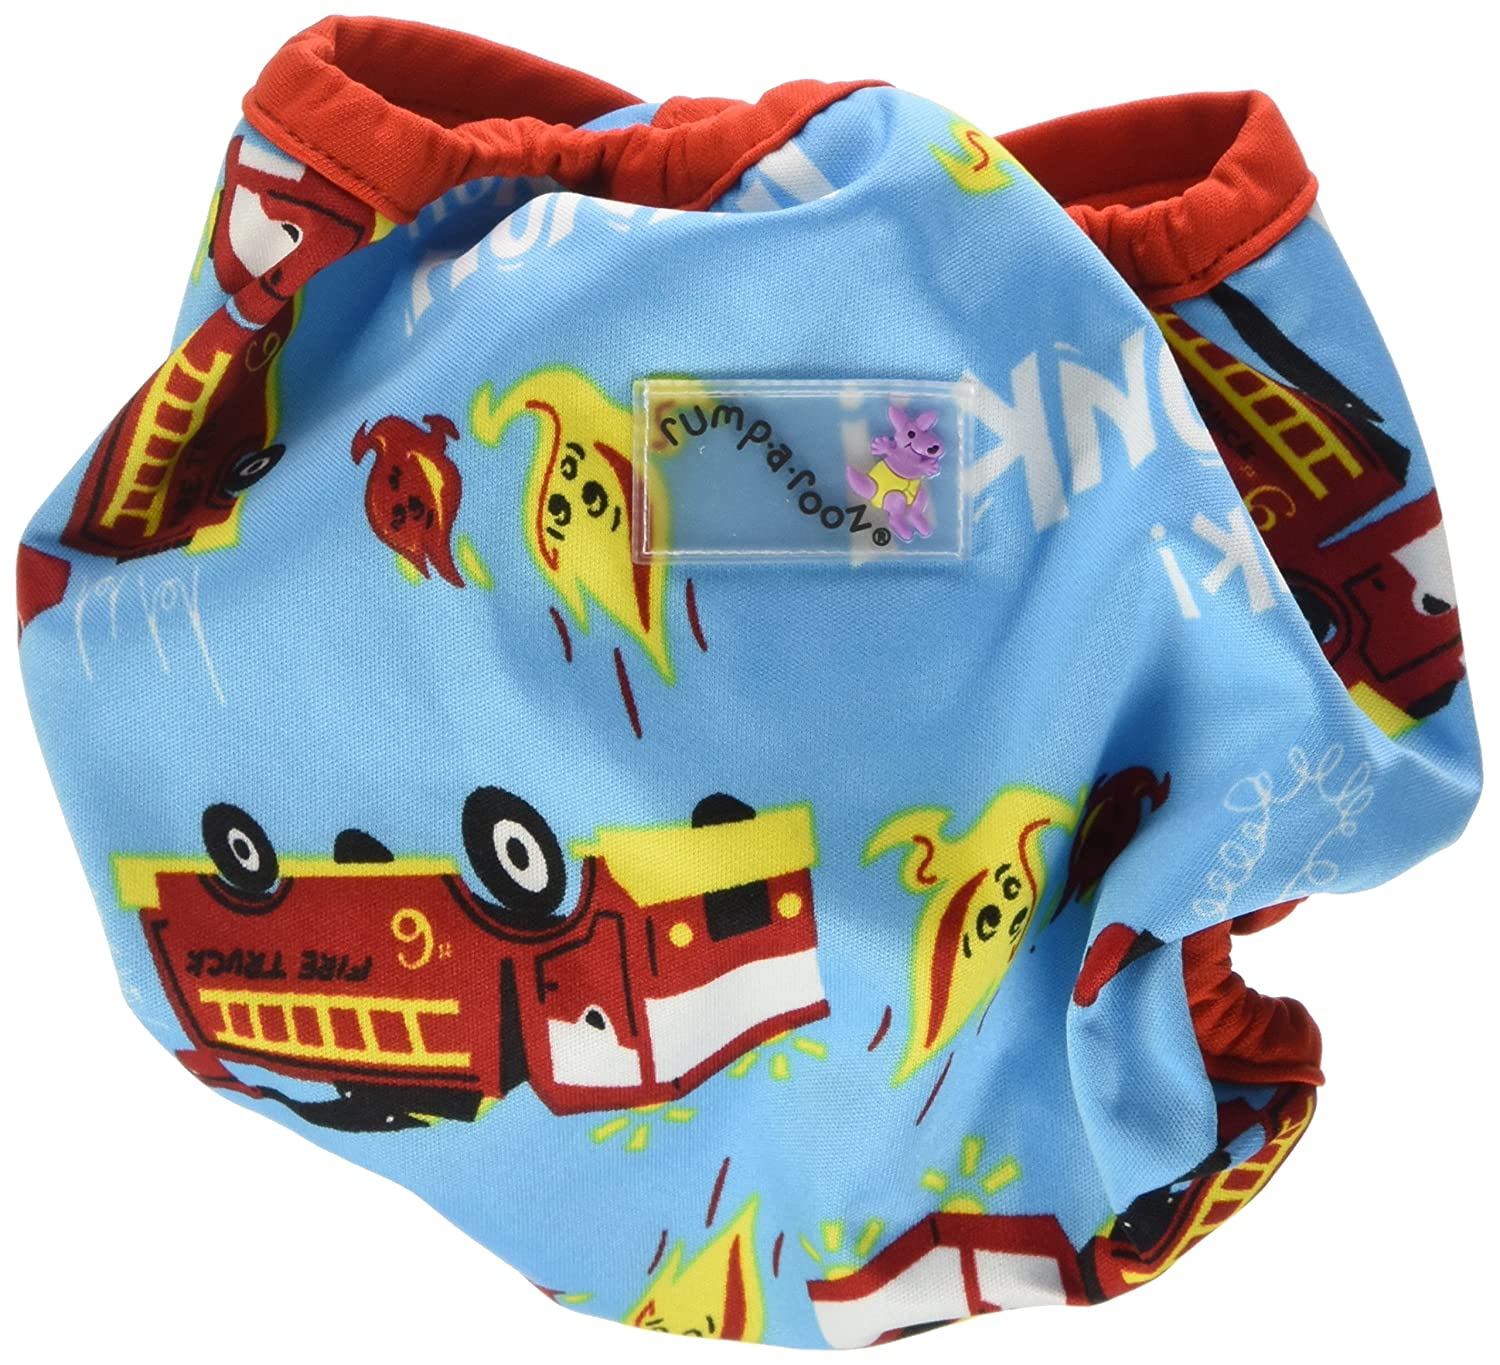 Rumparooz Newborn Cloth Diaper Cover Aplix, Fluff CVNB2012AX